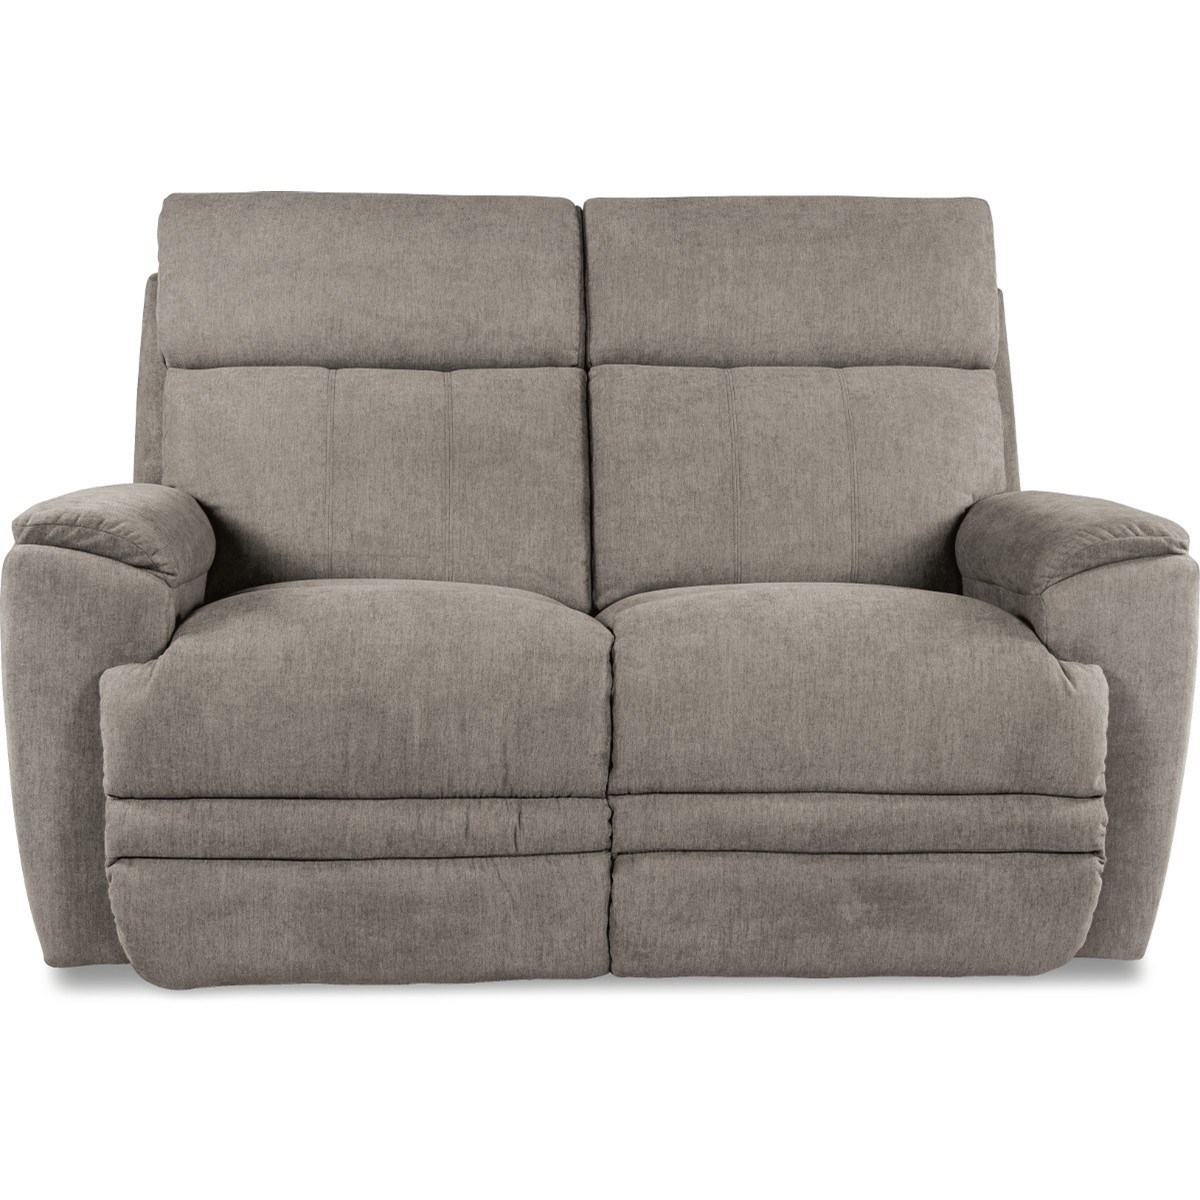 Talladega Power Reclining Loveseat w/ Headrests by La-Z-Boy at Home Furnishings Direct